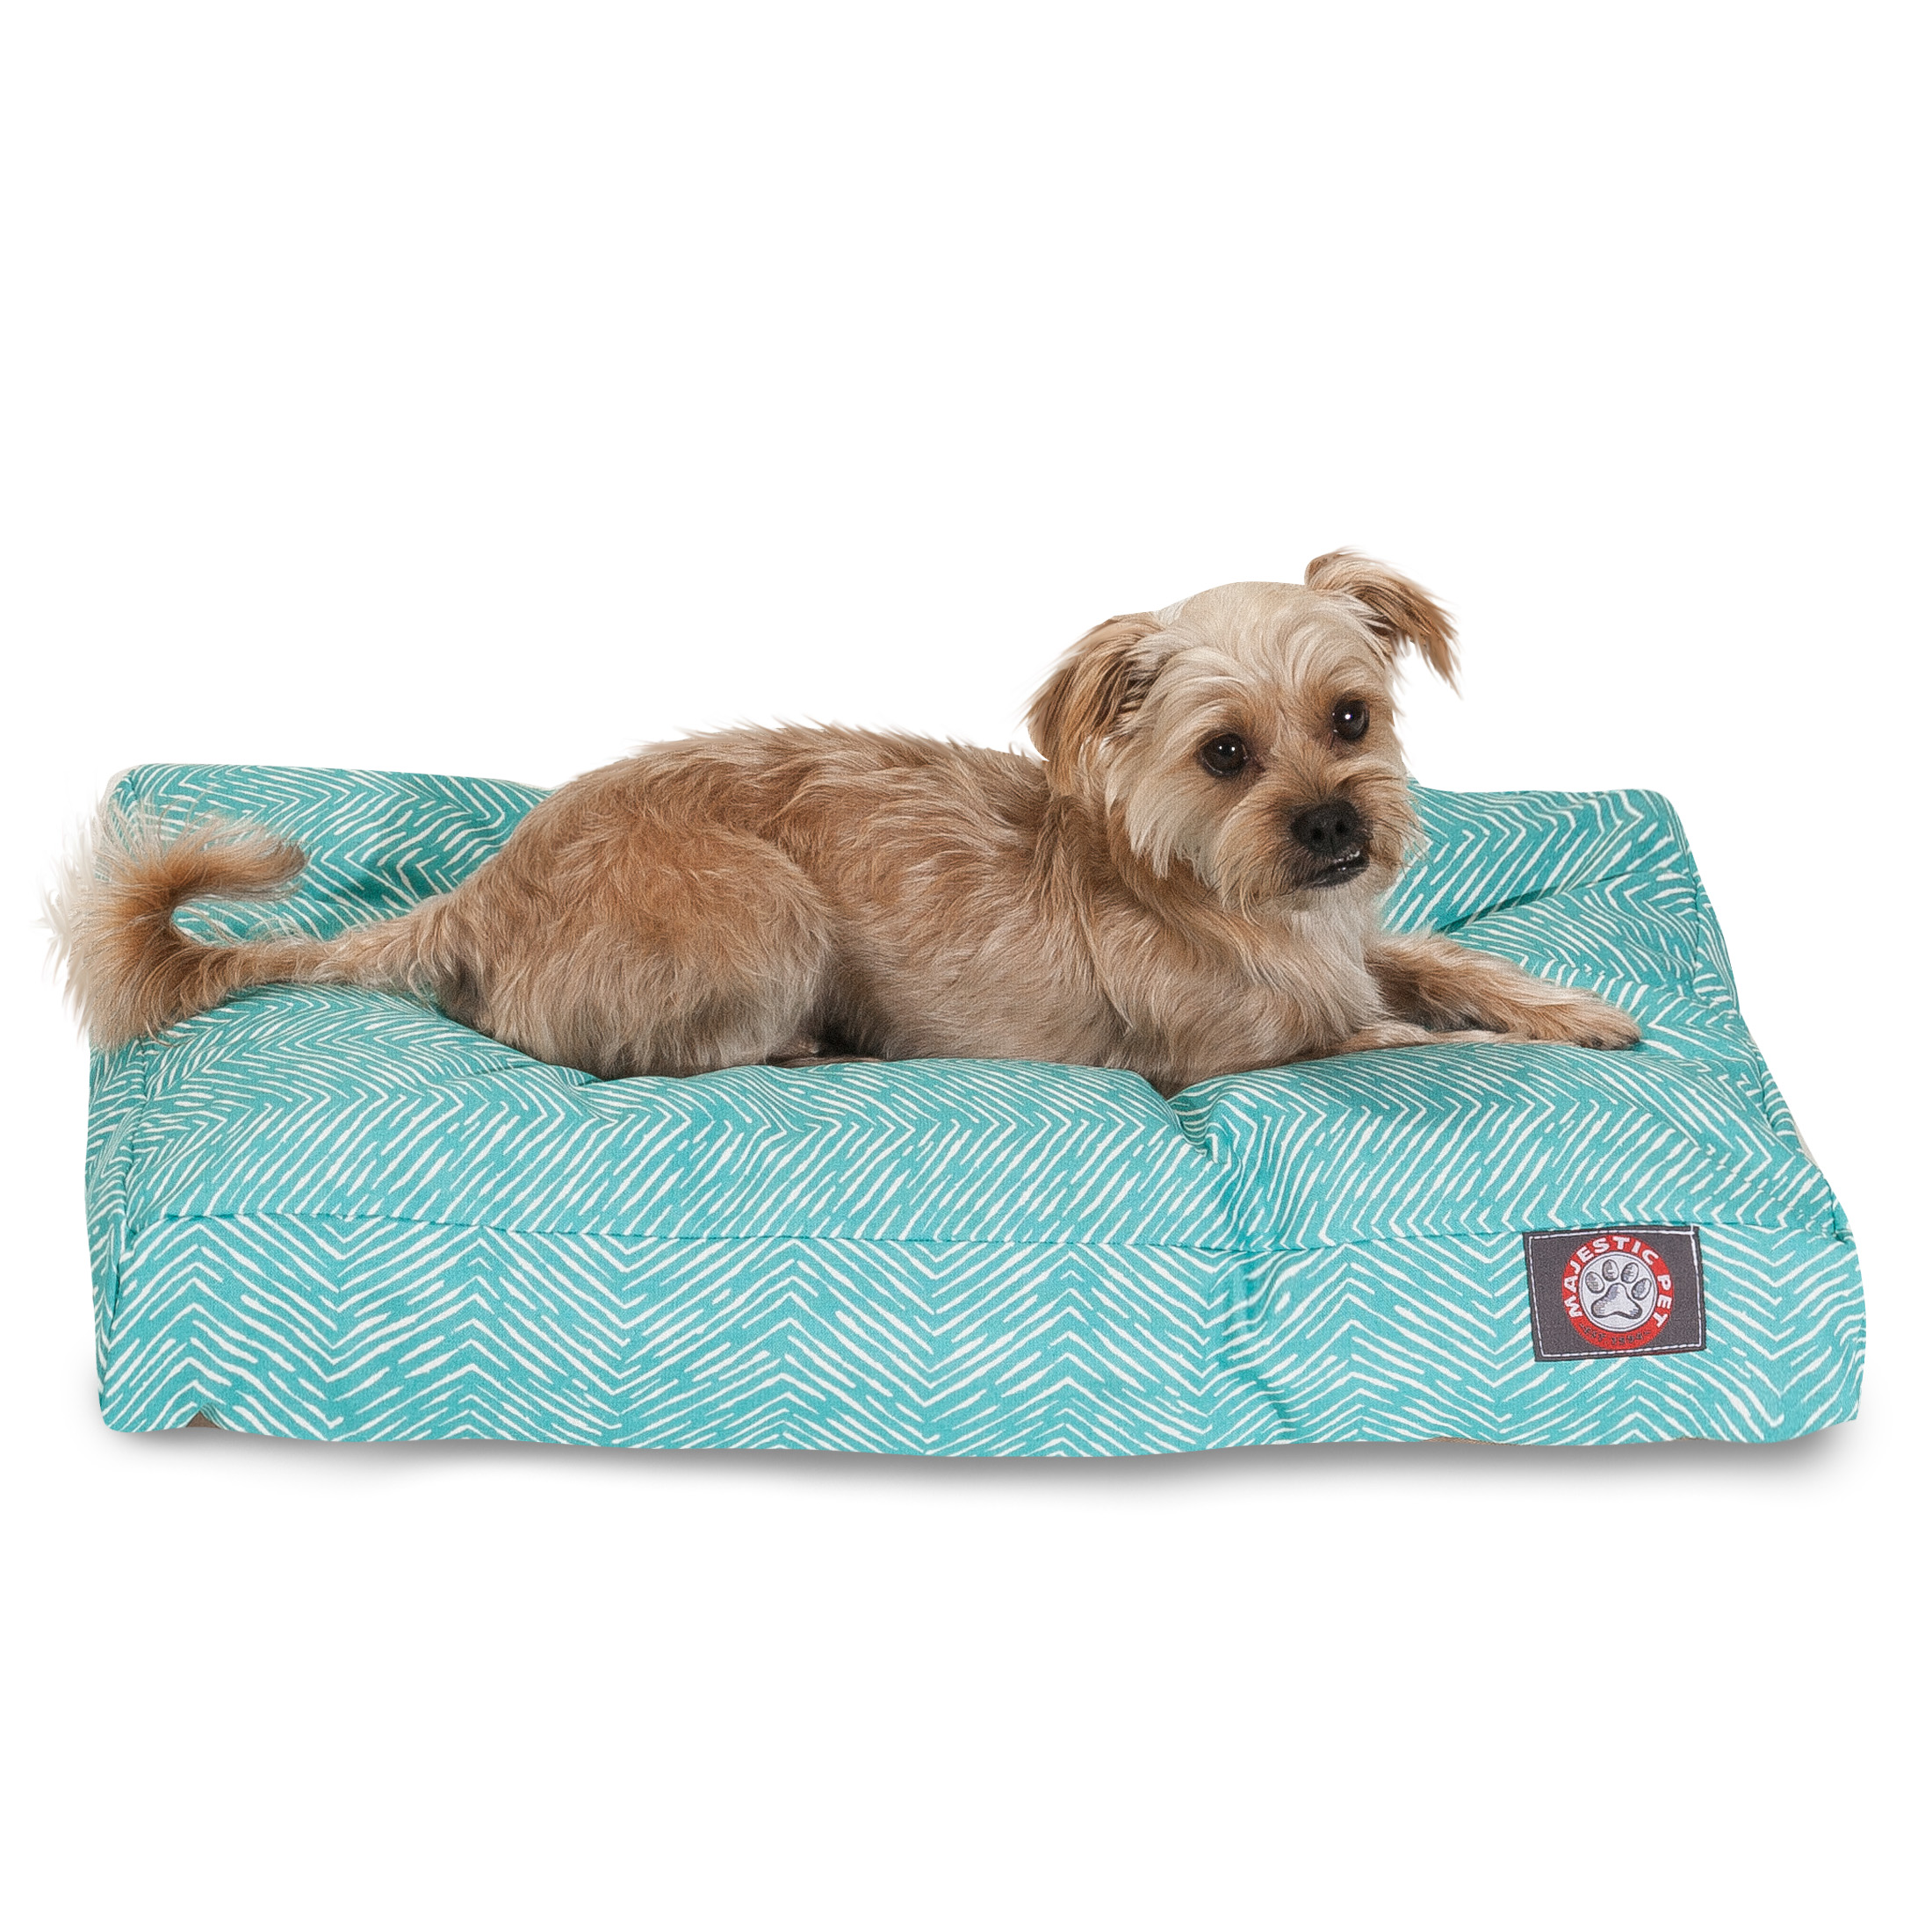 """Majestic Pet South West Rectangle Dog Bed Treated Polyester Removable Cover Teal Medium 36"""" x 29"""" x 4"""""""